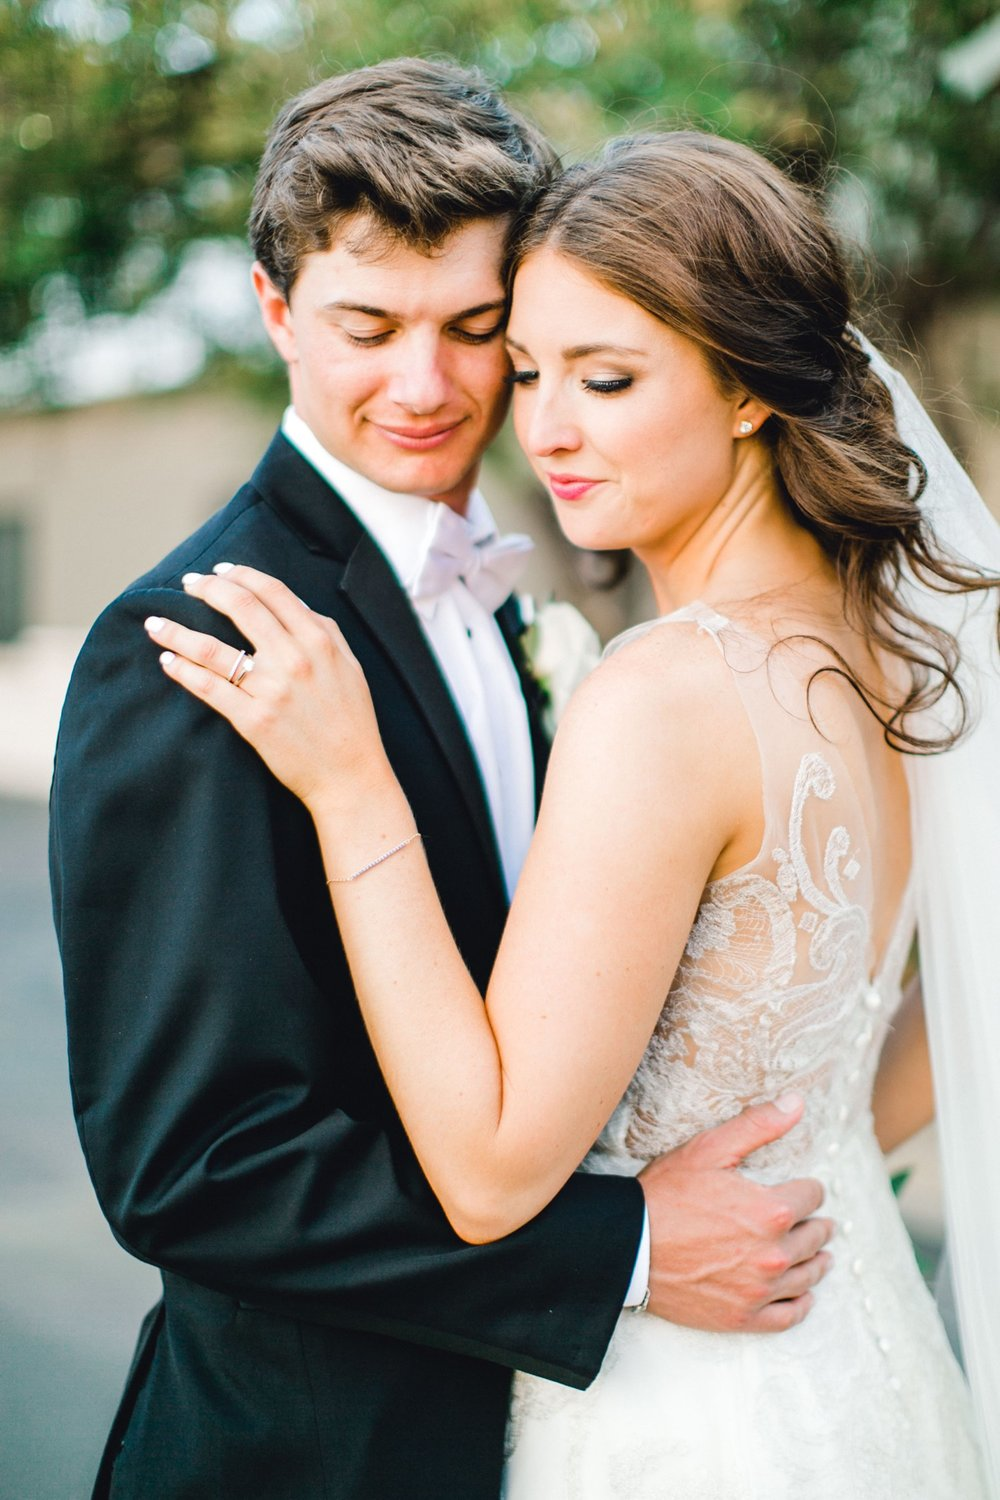 Hunter_and_Molly_Rawls_ALLEEJ_Lubbock_WEDDING_Legacy_Event_Center_0151.jpg